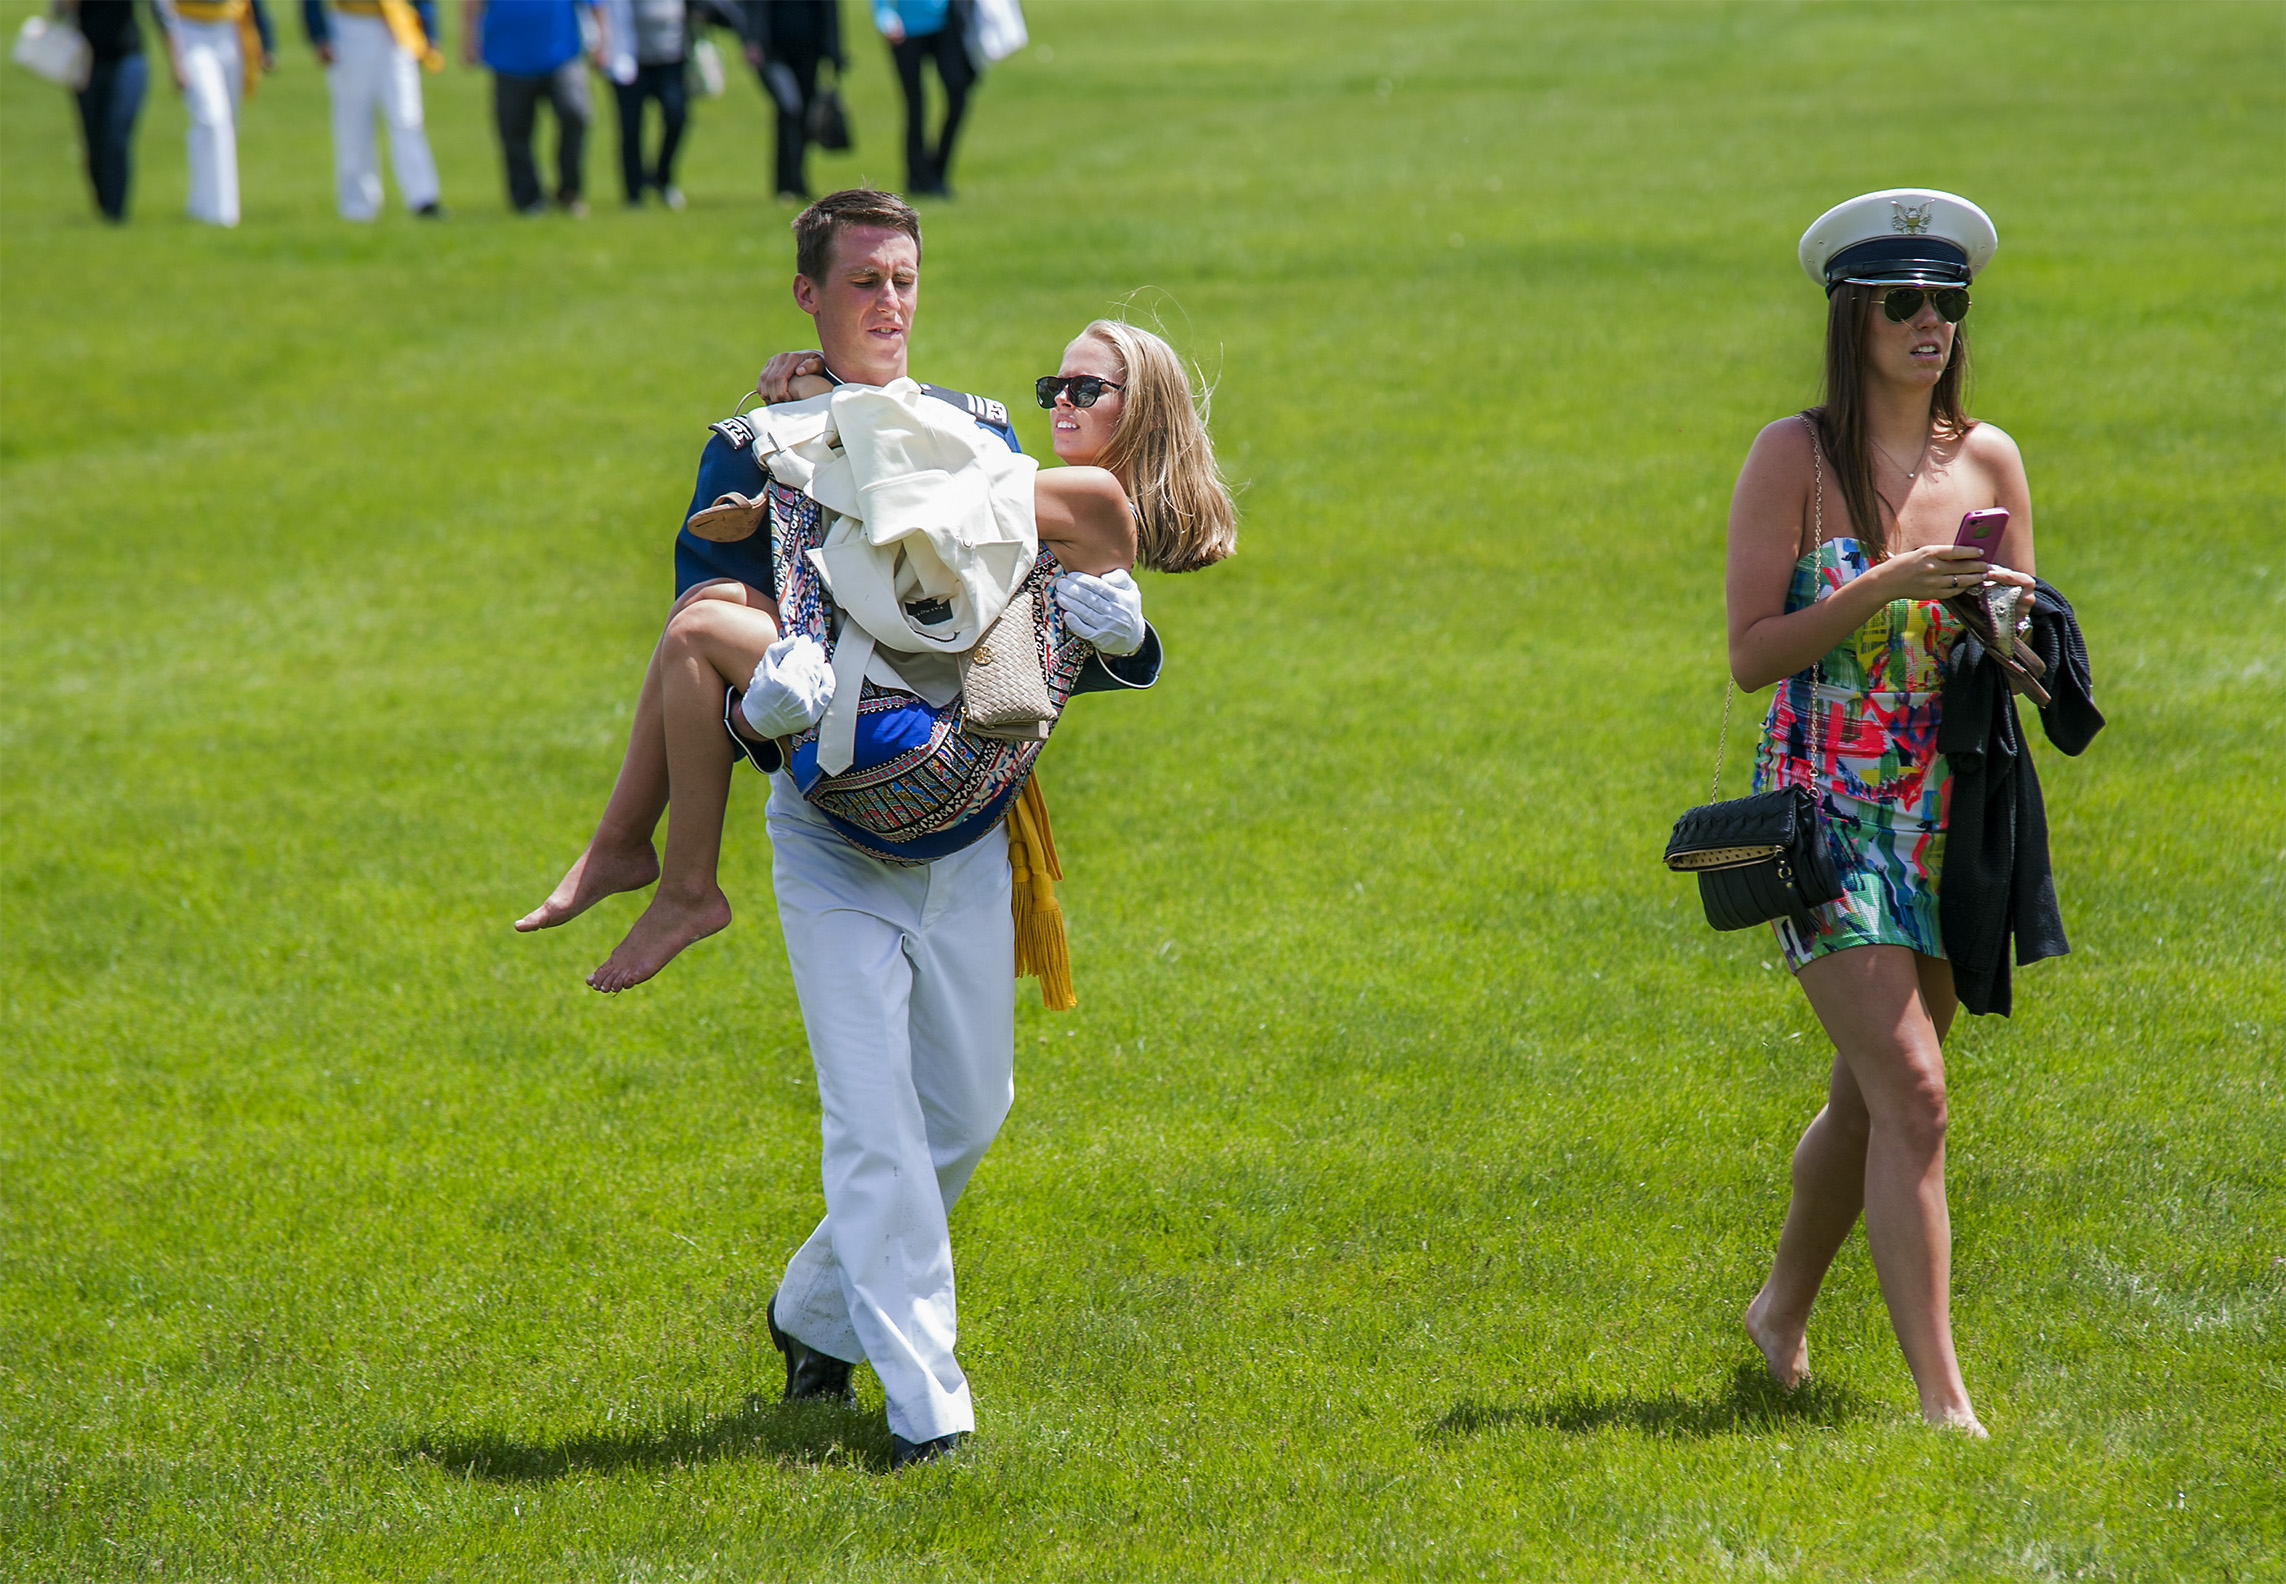 Cadet Landon Kinsey carries his girlfriend Hailey Jacob while walking with his sister Jenna Kinsey through the muddy field where the annual Air Force graduation parade was held to honor the Class of 2015 on Wednesday, May 27, 2015, in Colorado Springs, Colo. The Class of 2015 graduation will be held on May 28 inside Falcon Stadium at the Air Force Academy.